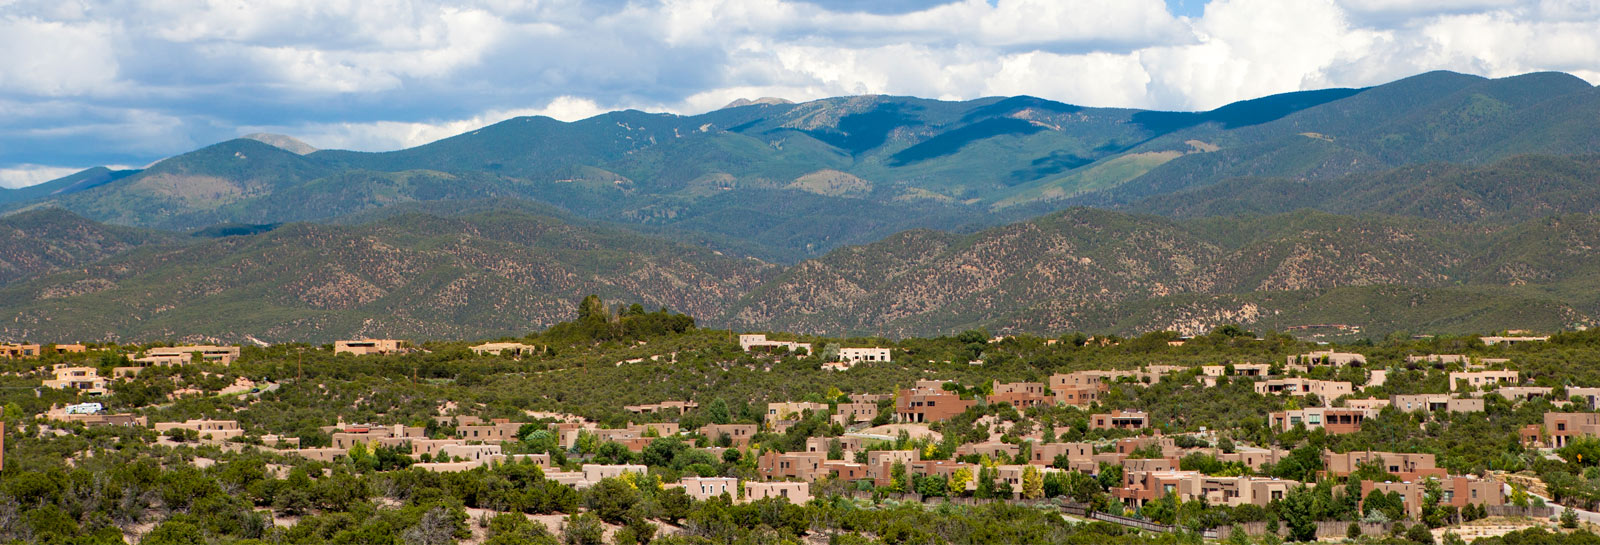 2017 State of the City | City of Santa Fe, New Mexico